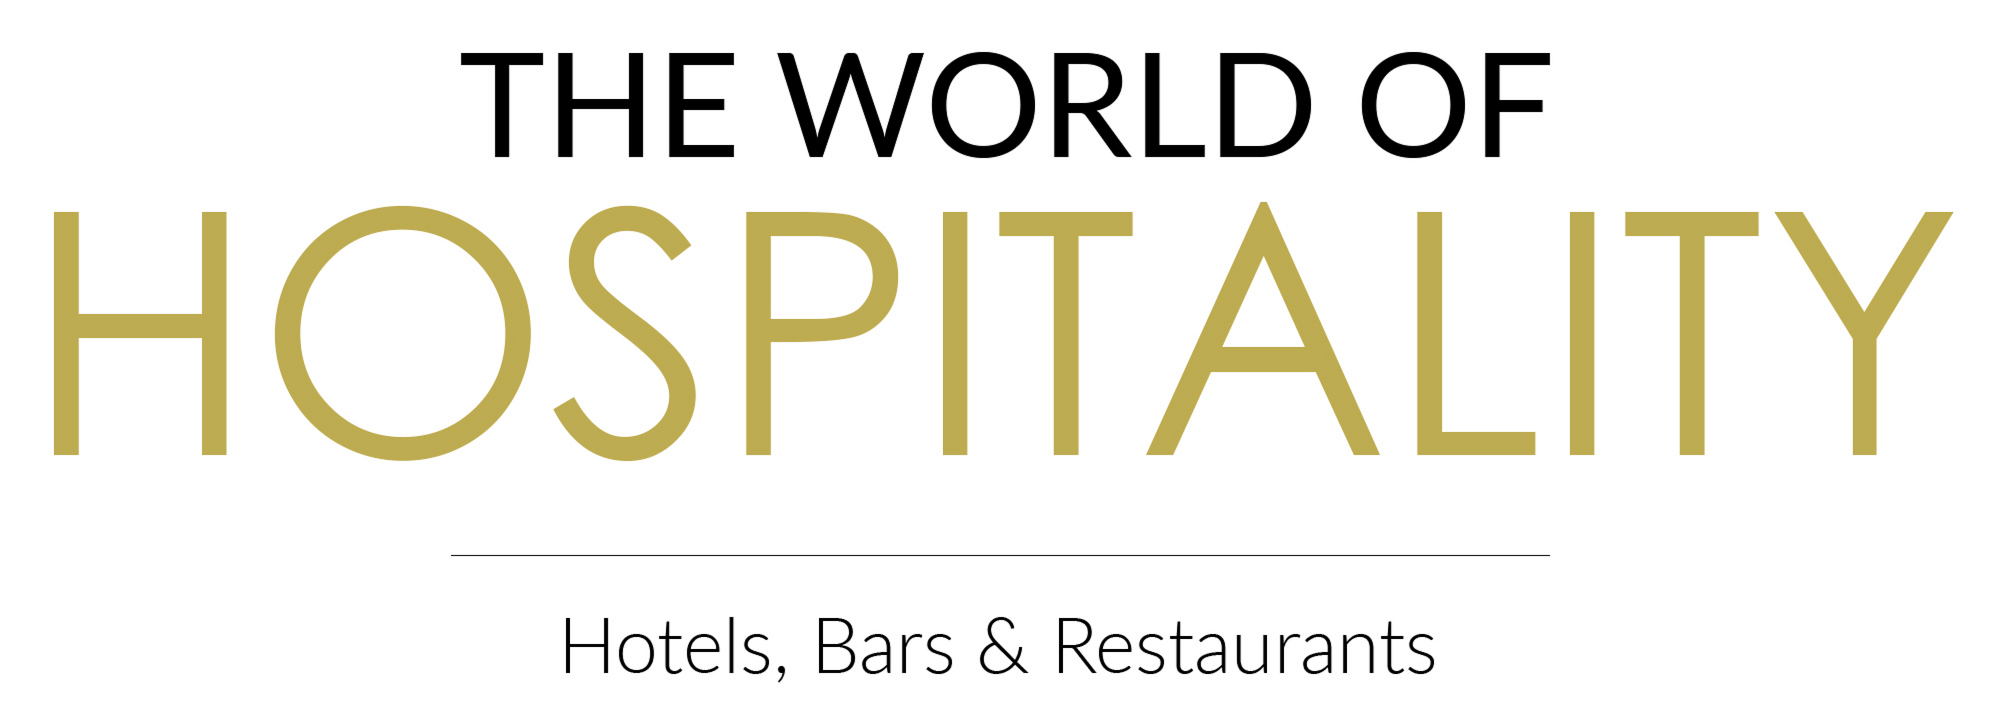 World of Hospitality